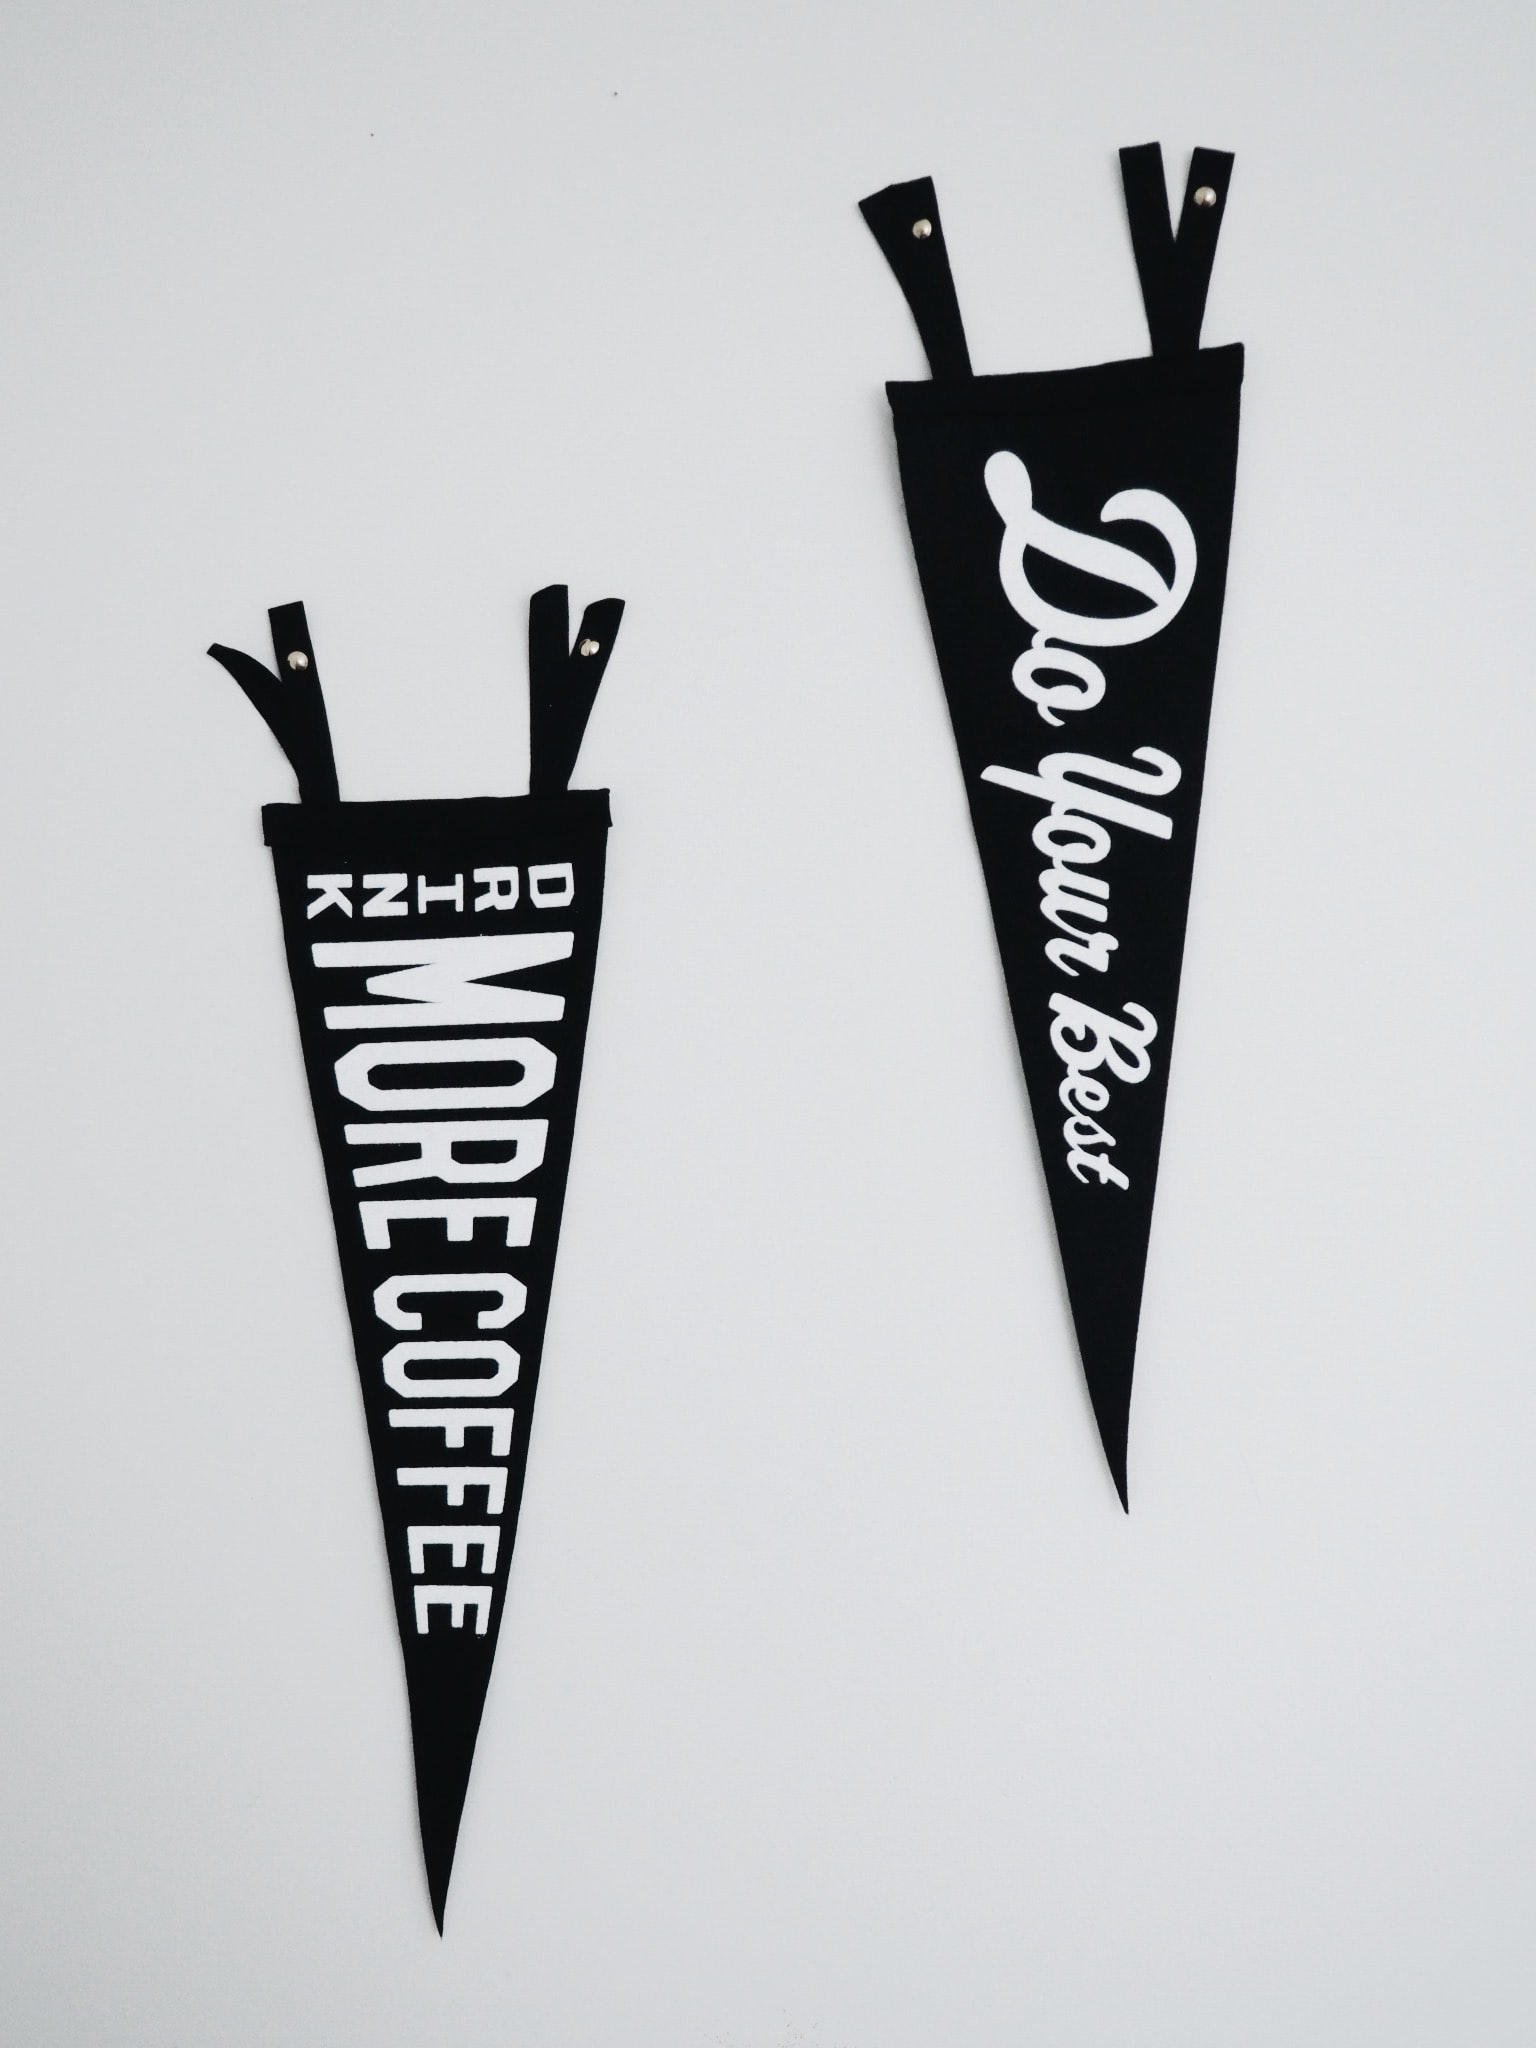 two black-and-white banners with texts